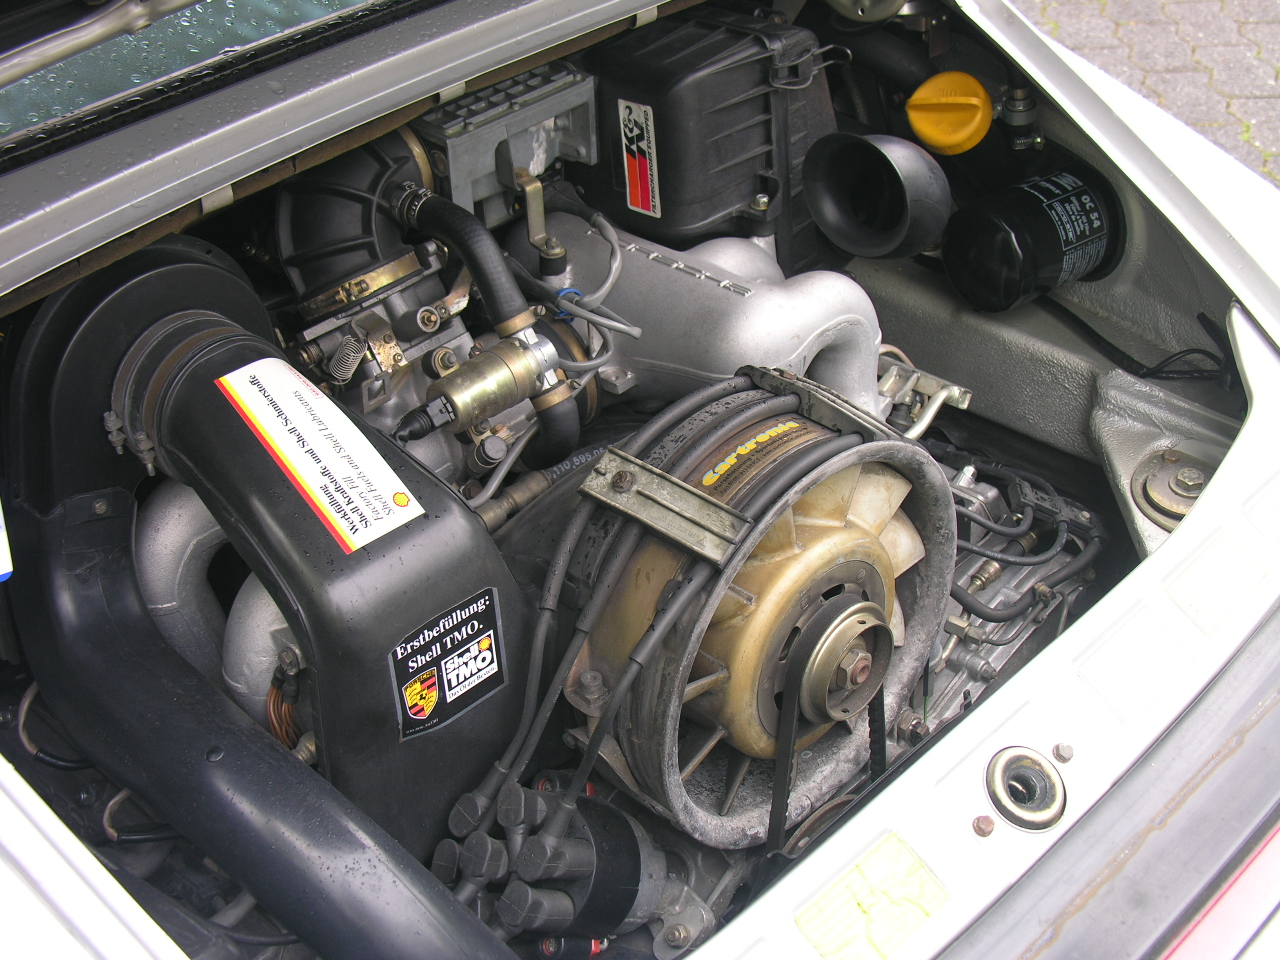 Porsche 3 2 Engine Diagram Simple Guide About Wiring Boxster File Motor Carrera L Wikimedia Commons Rh Org